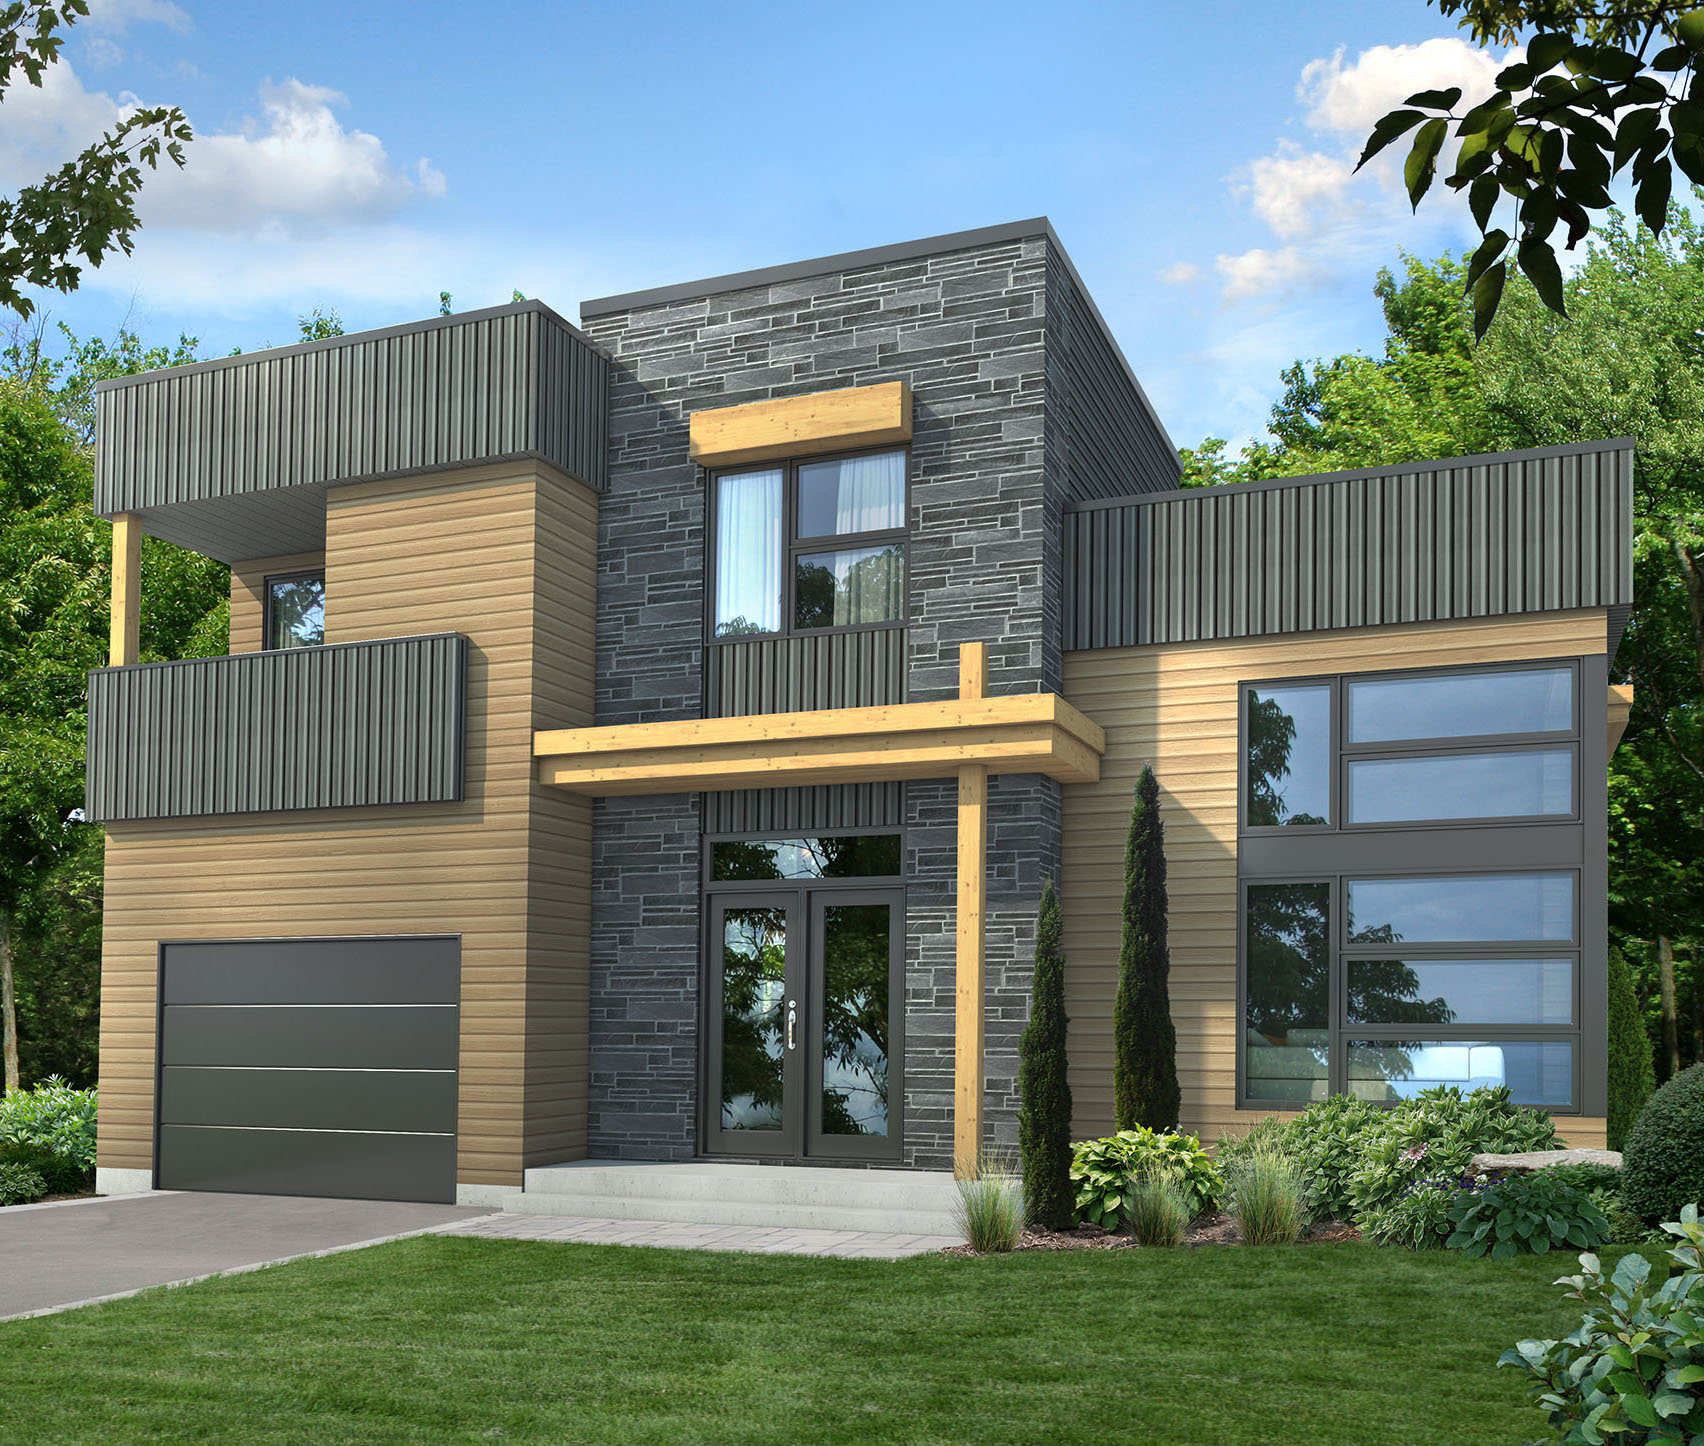 Dynamic Contemporary House Plan  80782pm  Architectural